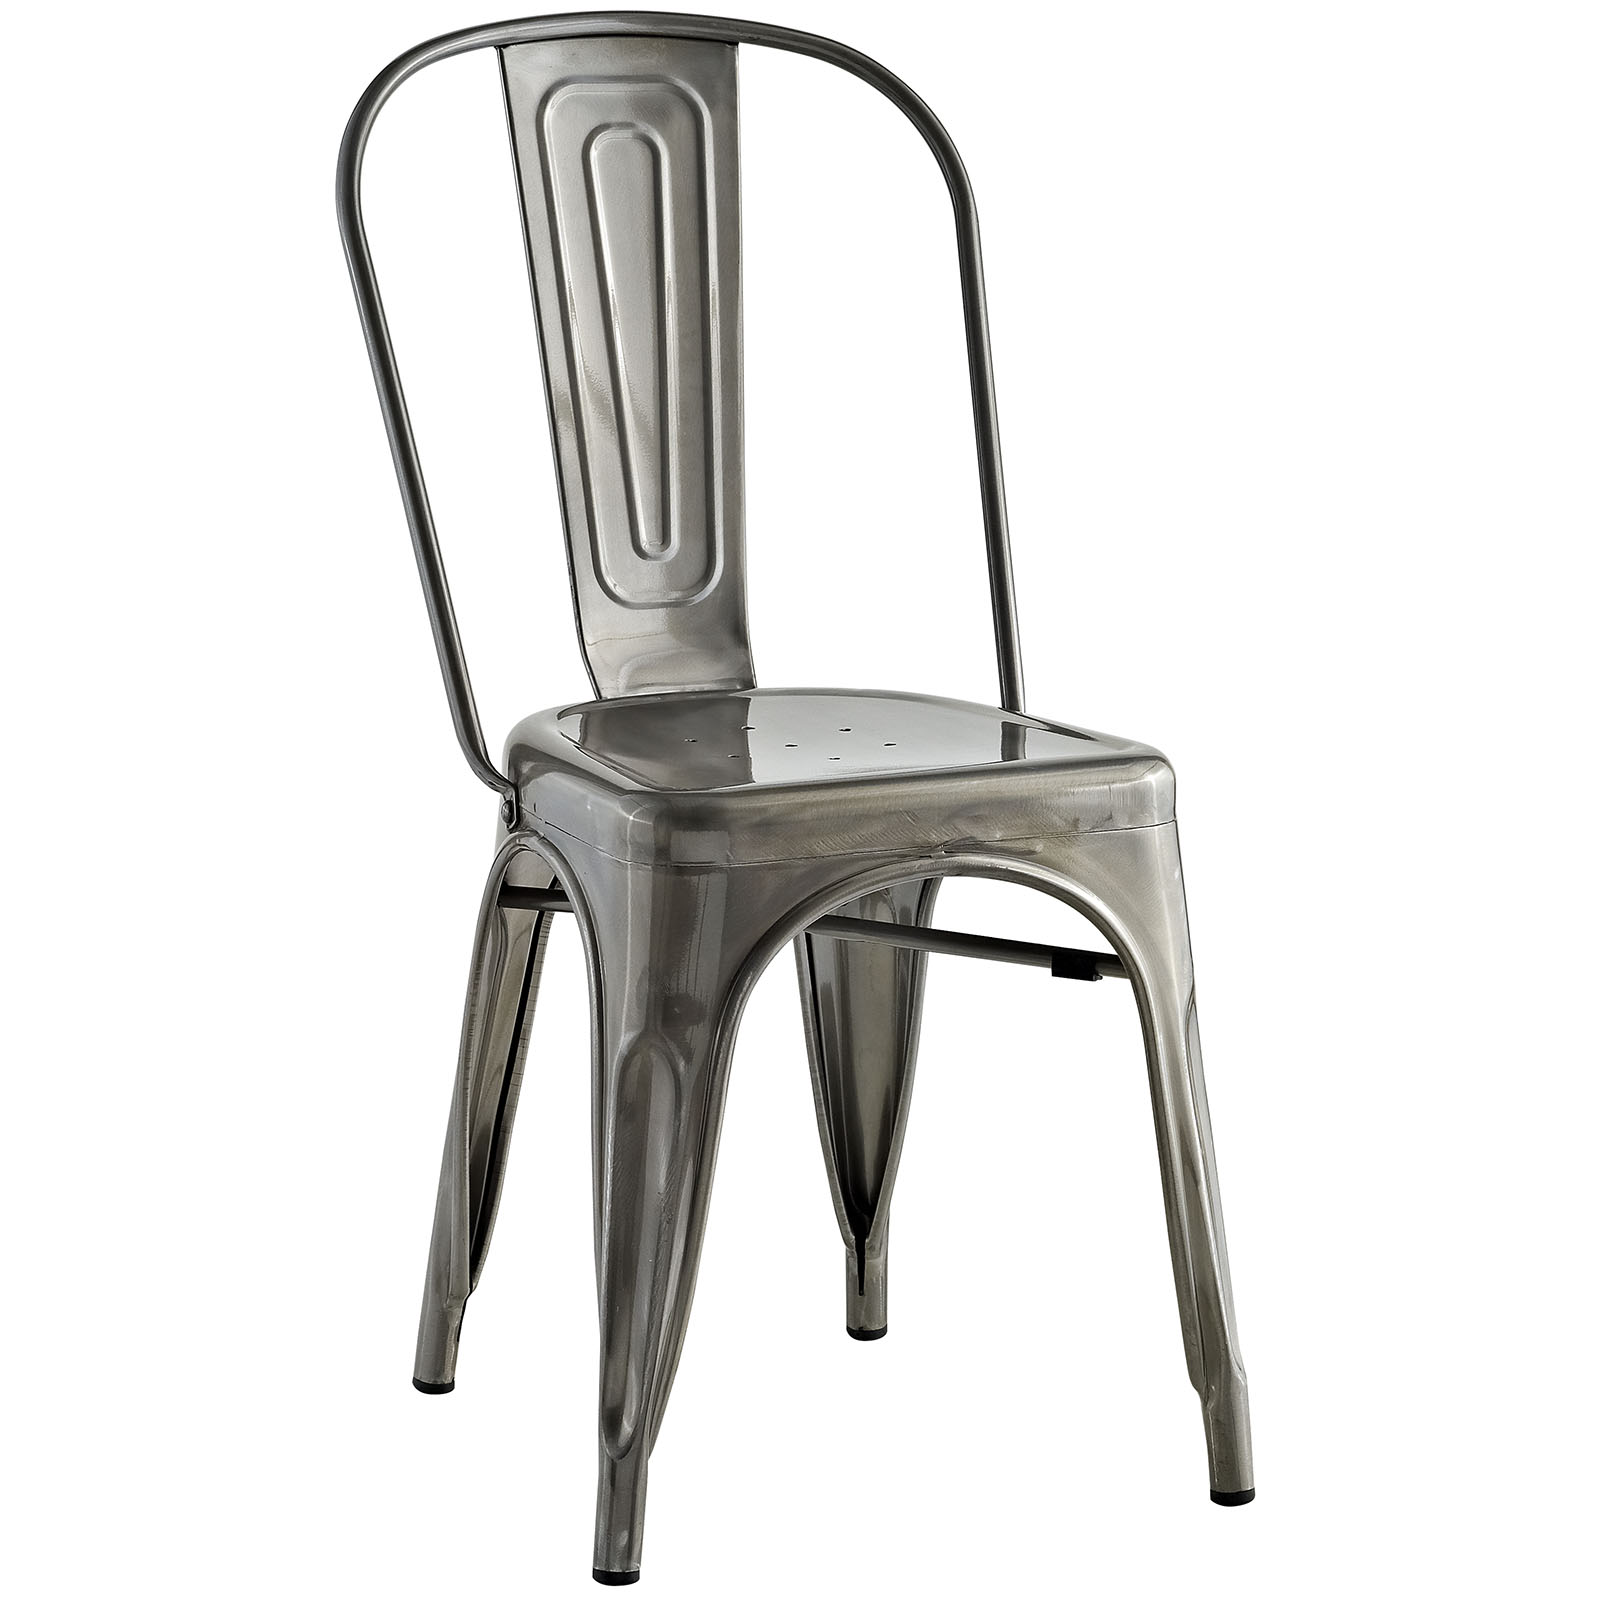 Modern Contemporary Urban Design Industrial Distressed Antique Vintage Style Kitchen Room Dining Chair, Silver, Metal